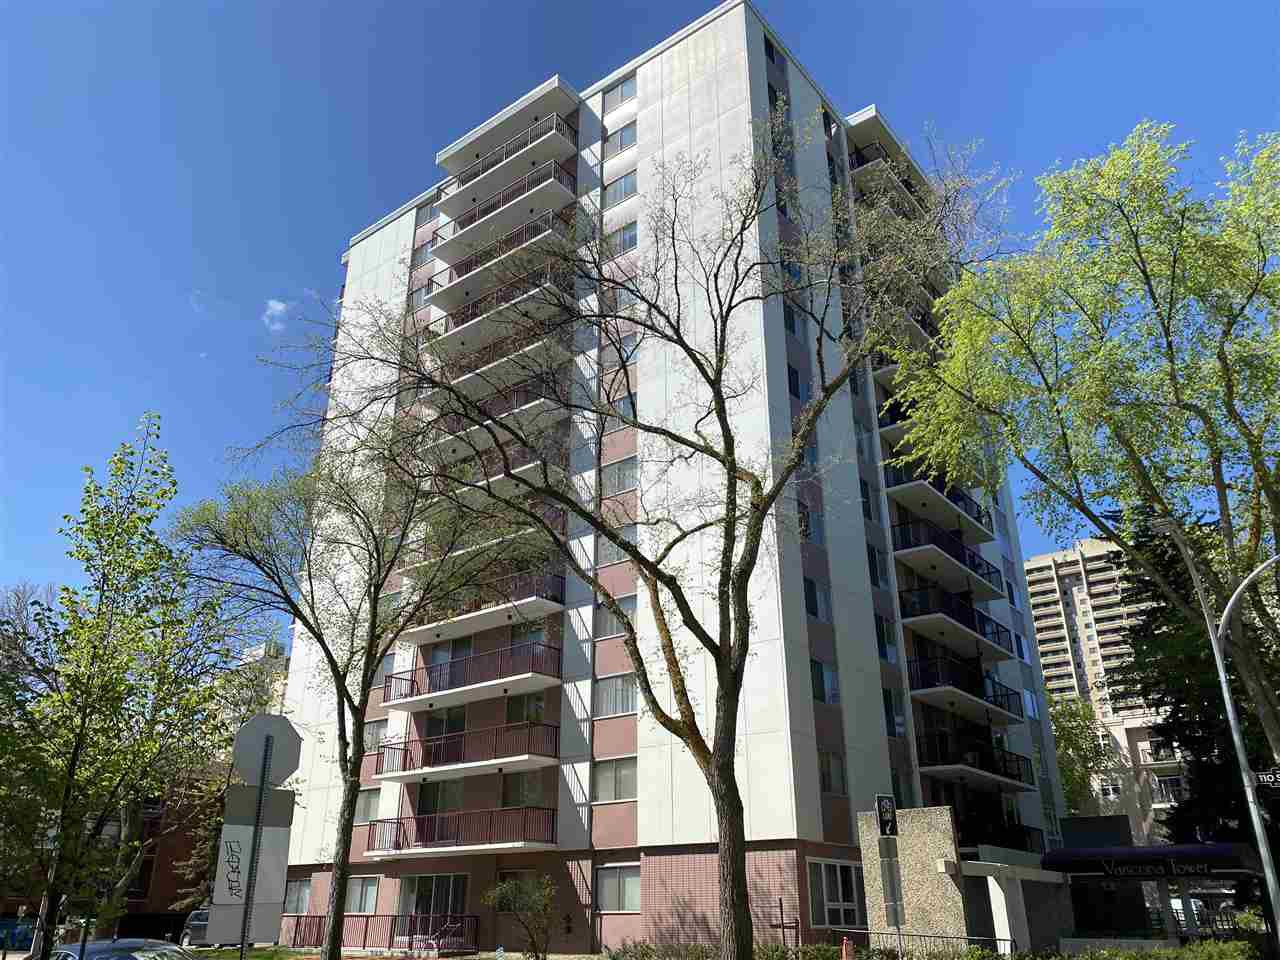 Main Photo: 1302 11007 83 Avenue in Edmonton: Zone 15 Condo for sale : MLS®# E4187723